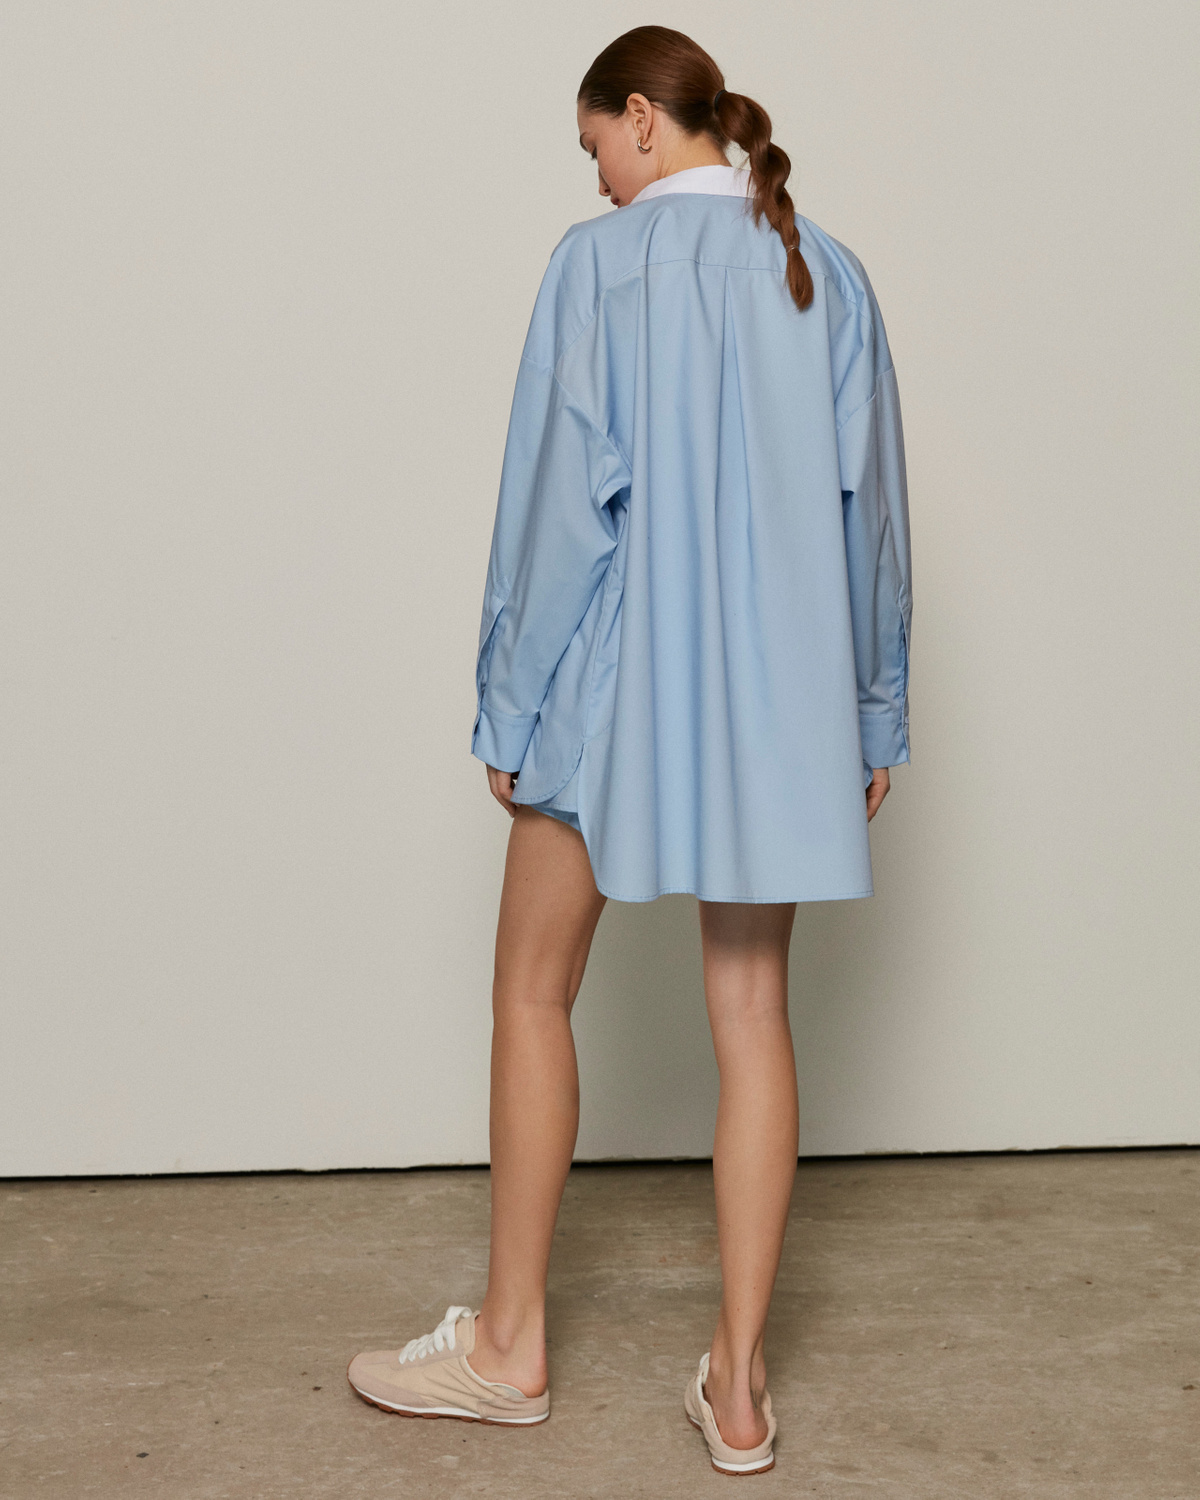 Pyjama shirt with a white collar, Sky-blue, XS-S